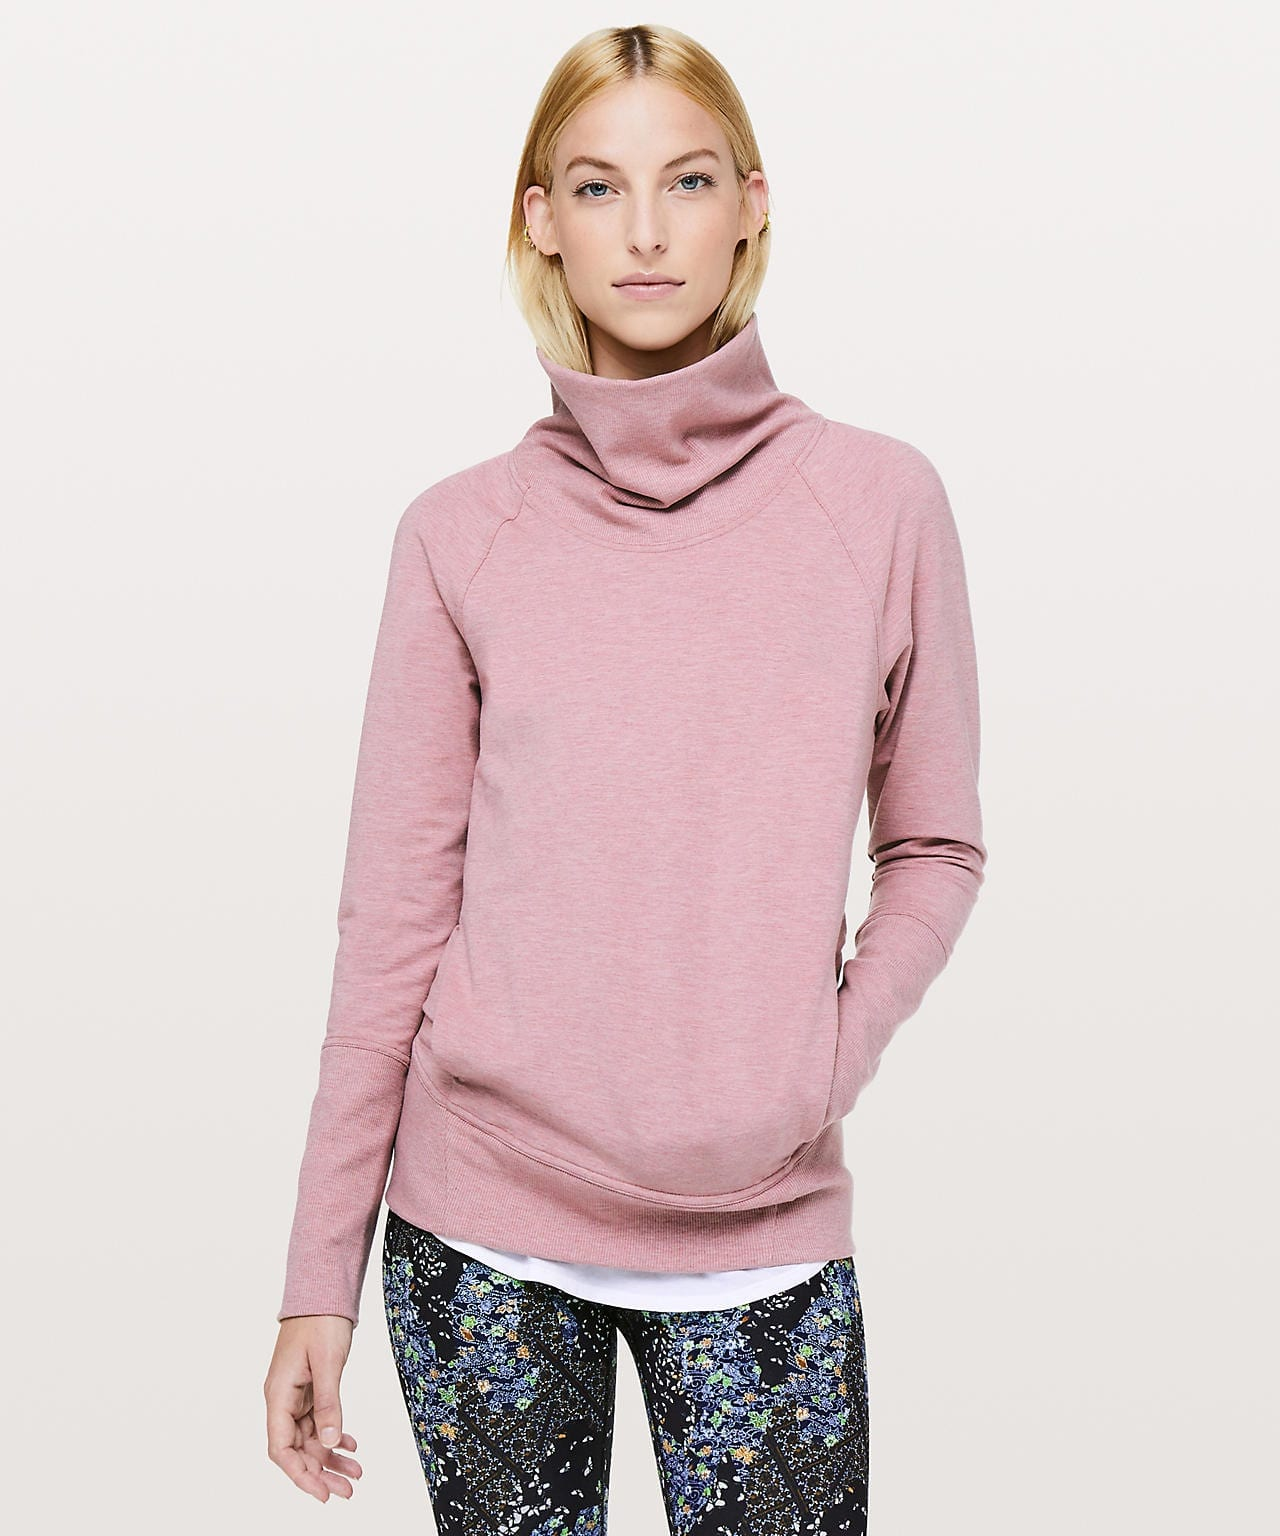 High Lines Pullover, Heathered Vintage Mauve